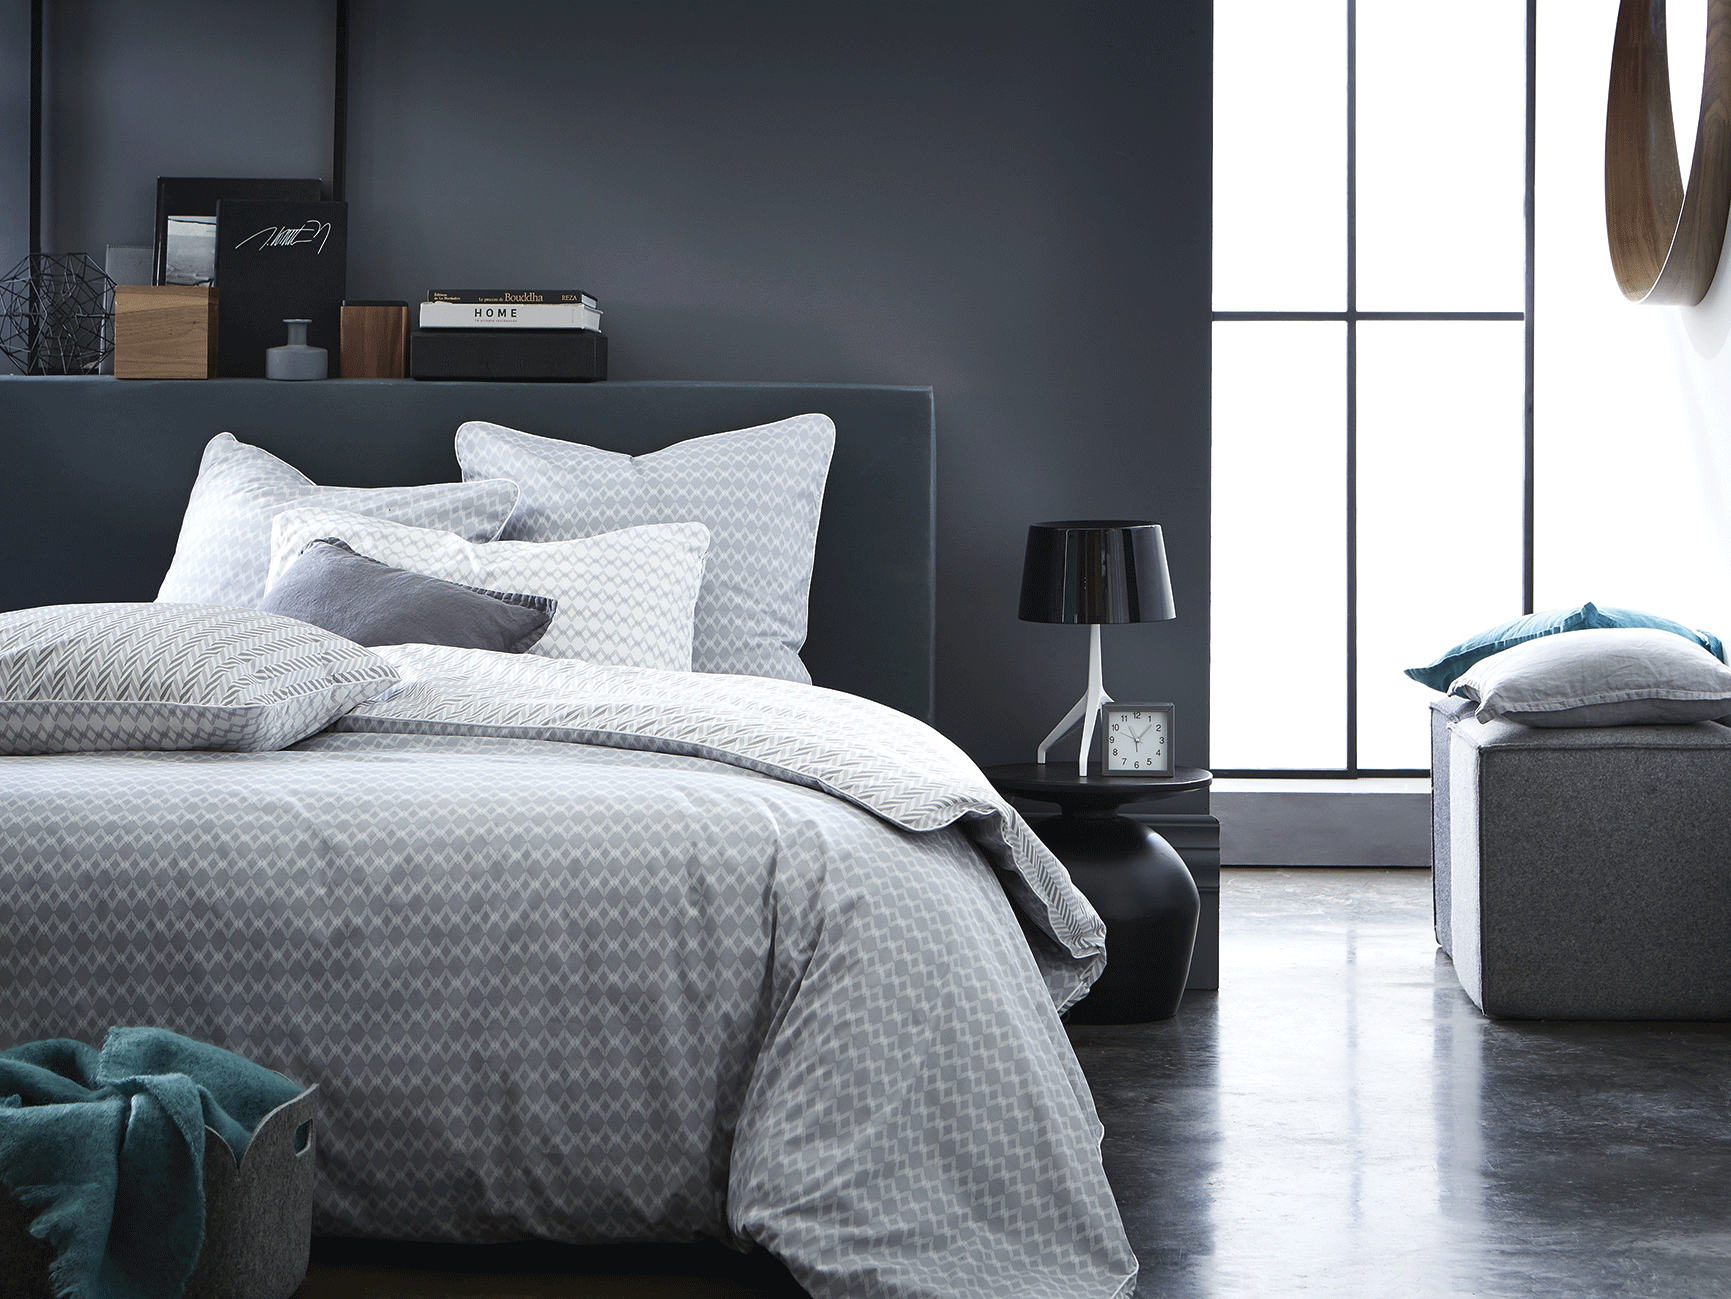 nouvelle parure imprim e vice versa gris et blanc pour une. Black Bedroom Furniture Sets. Home Design Ideas